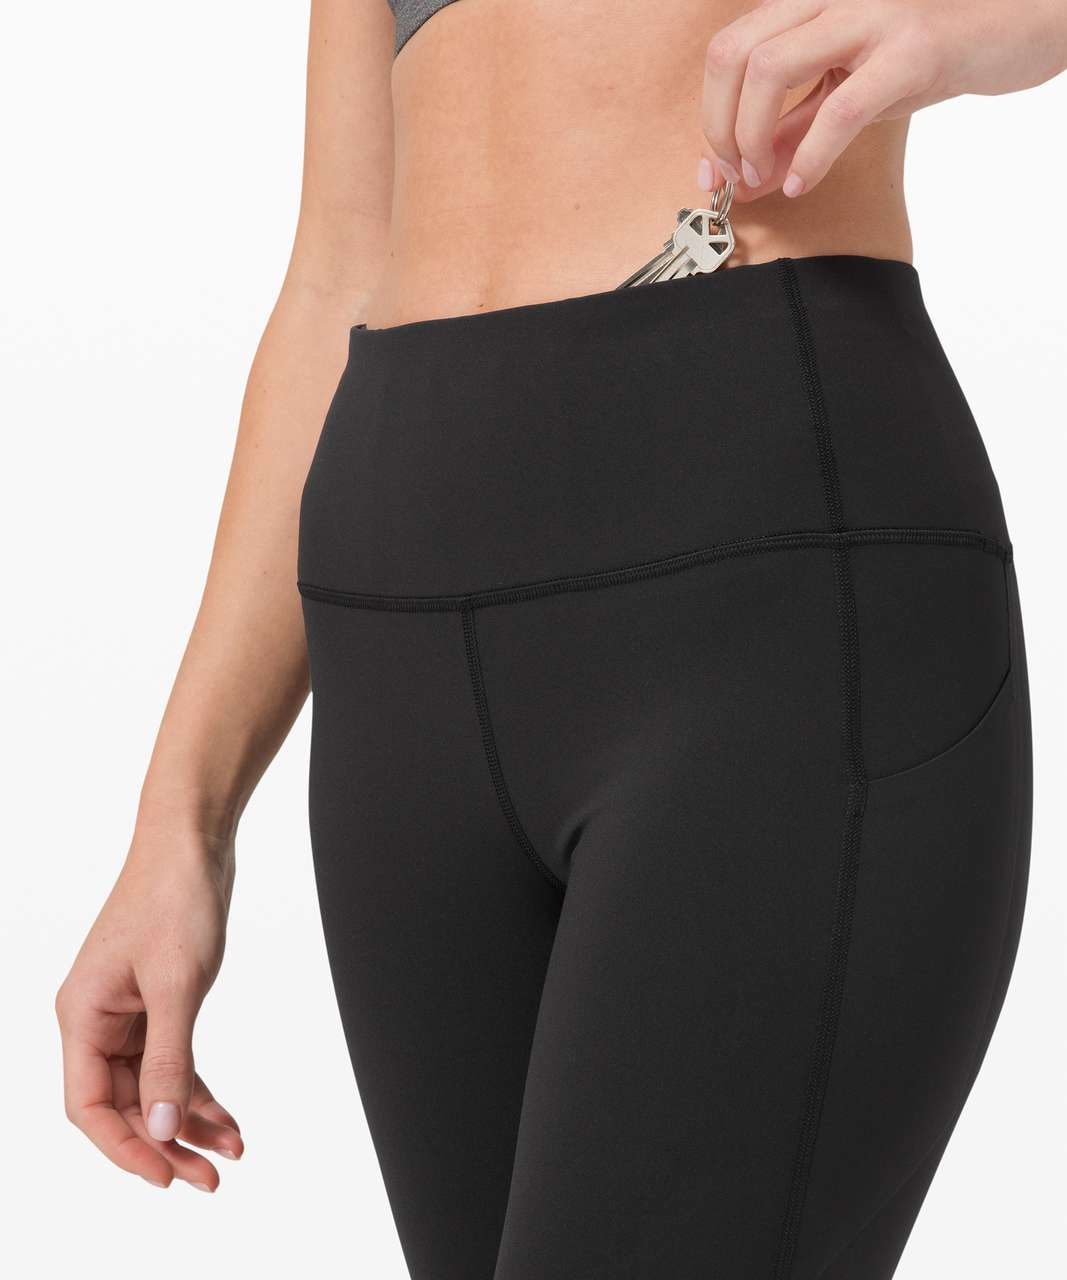 "Lululemon Pace Rival High-Rise Crop 22"" - Black"